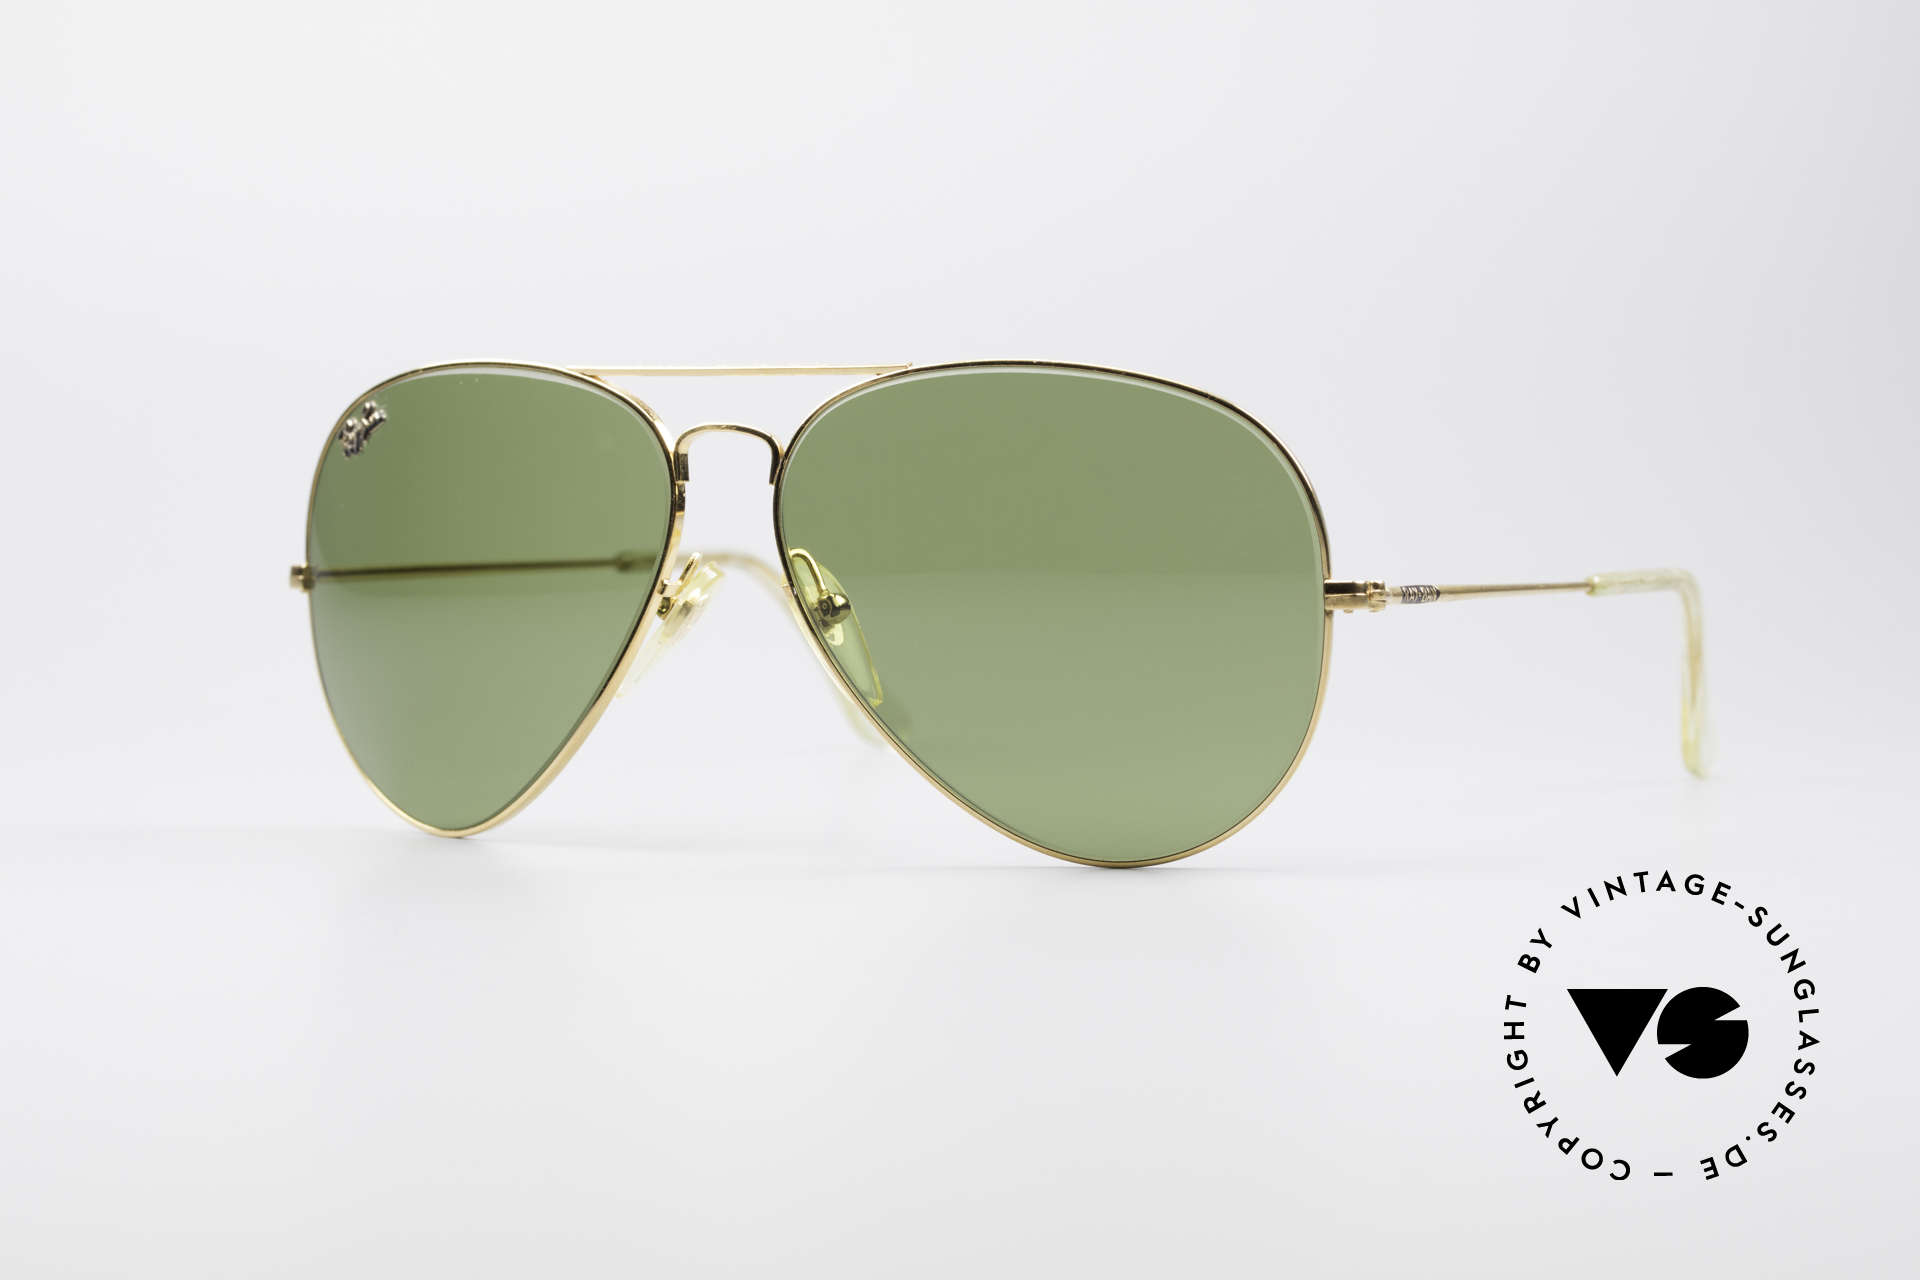 faac2a07ab Sonnenbrillen Ray Ban Large Metal II Elite Limited Edition USA | Vintage  Sunglasses